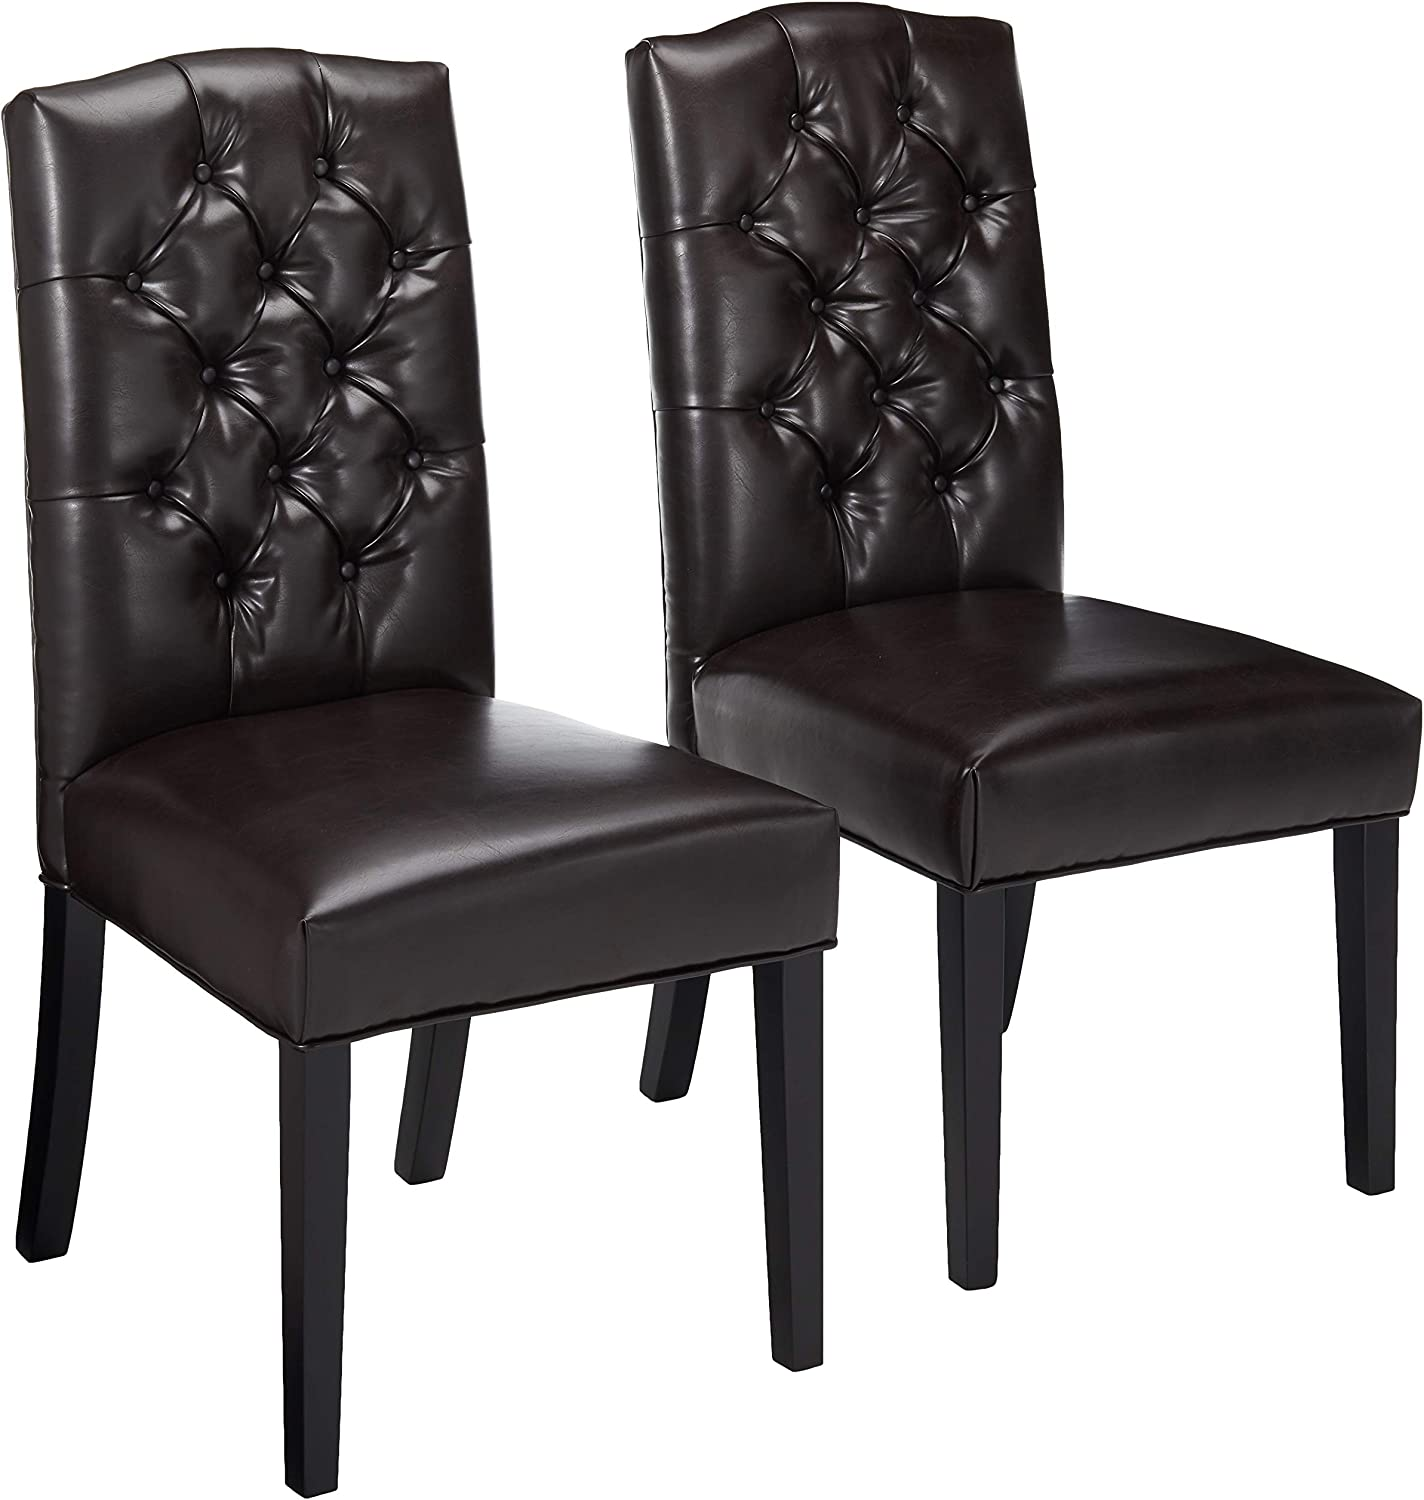 Christopher Knight Home 216284 Clark Leather Upholstered Dining Chairs w/Button Tufted Backrest (Set of 2), Brown